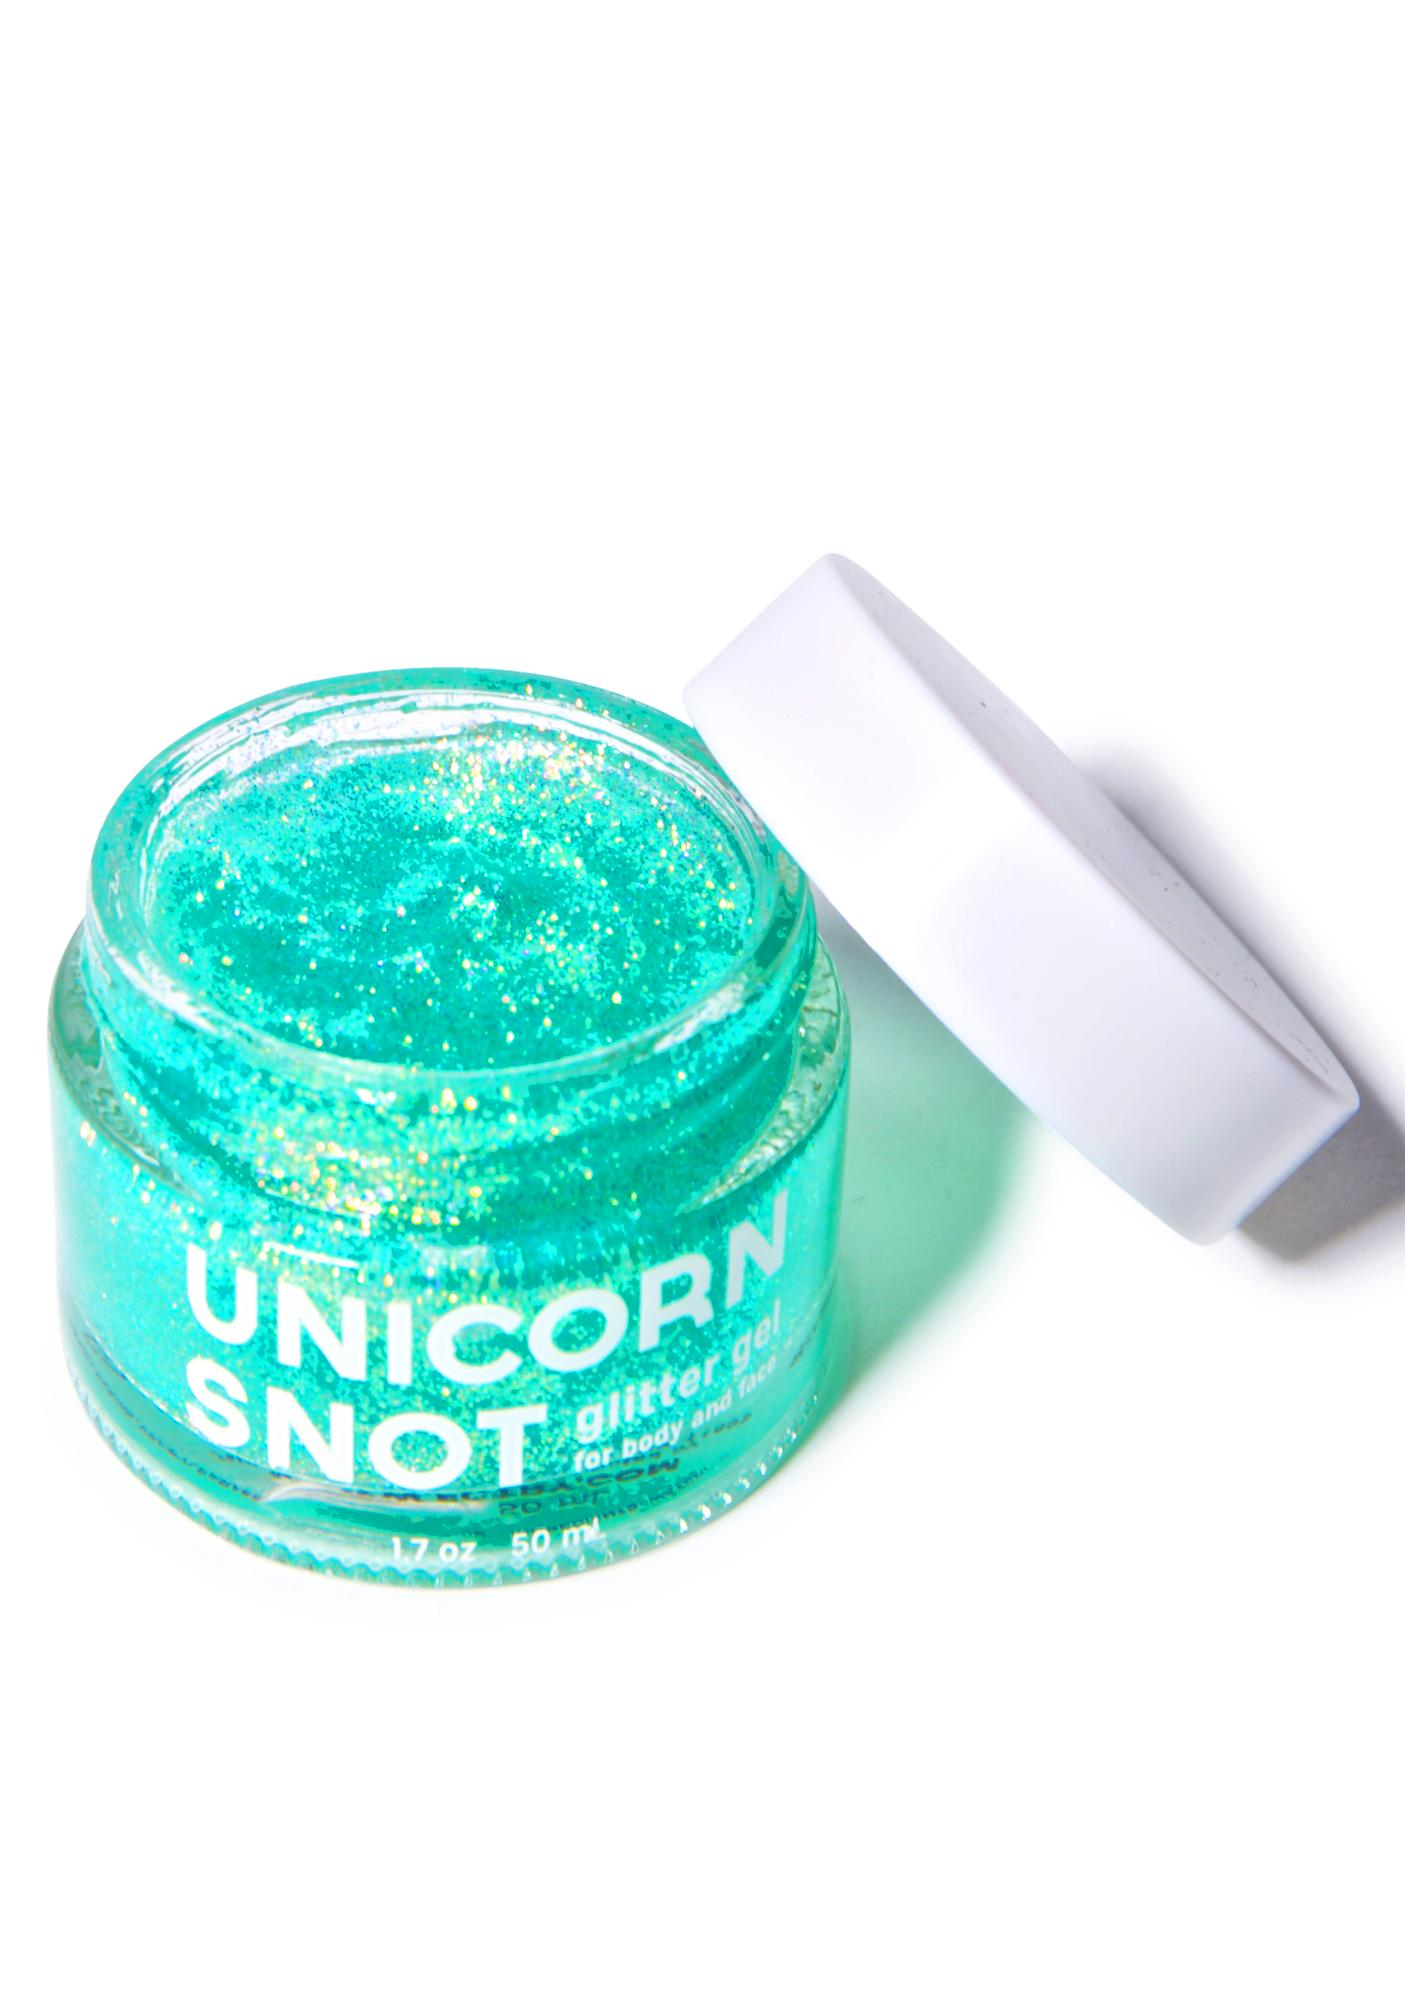 Unicorn Snot Unicorn Snot Blue Glitter Gel